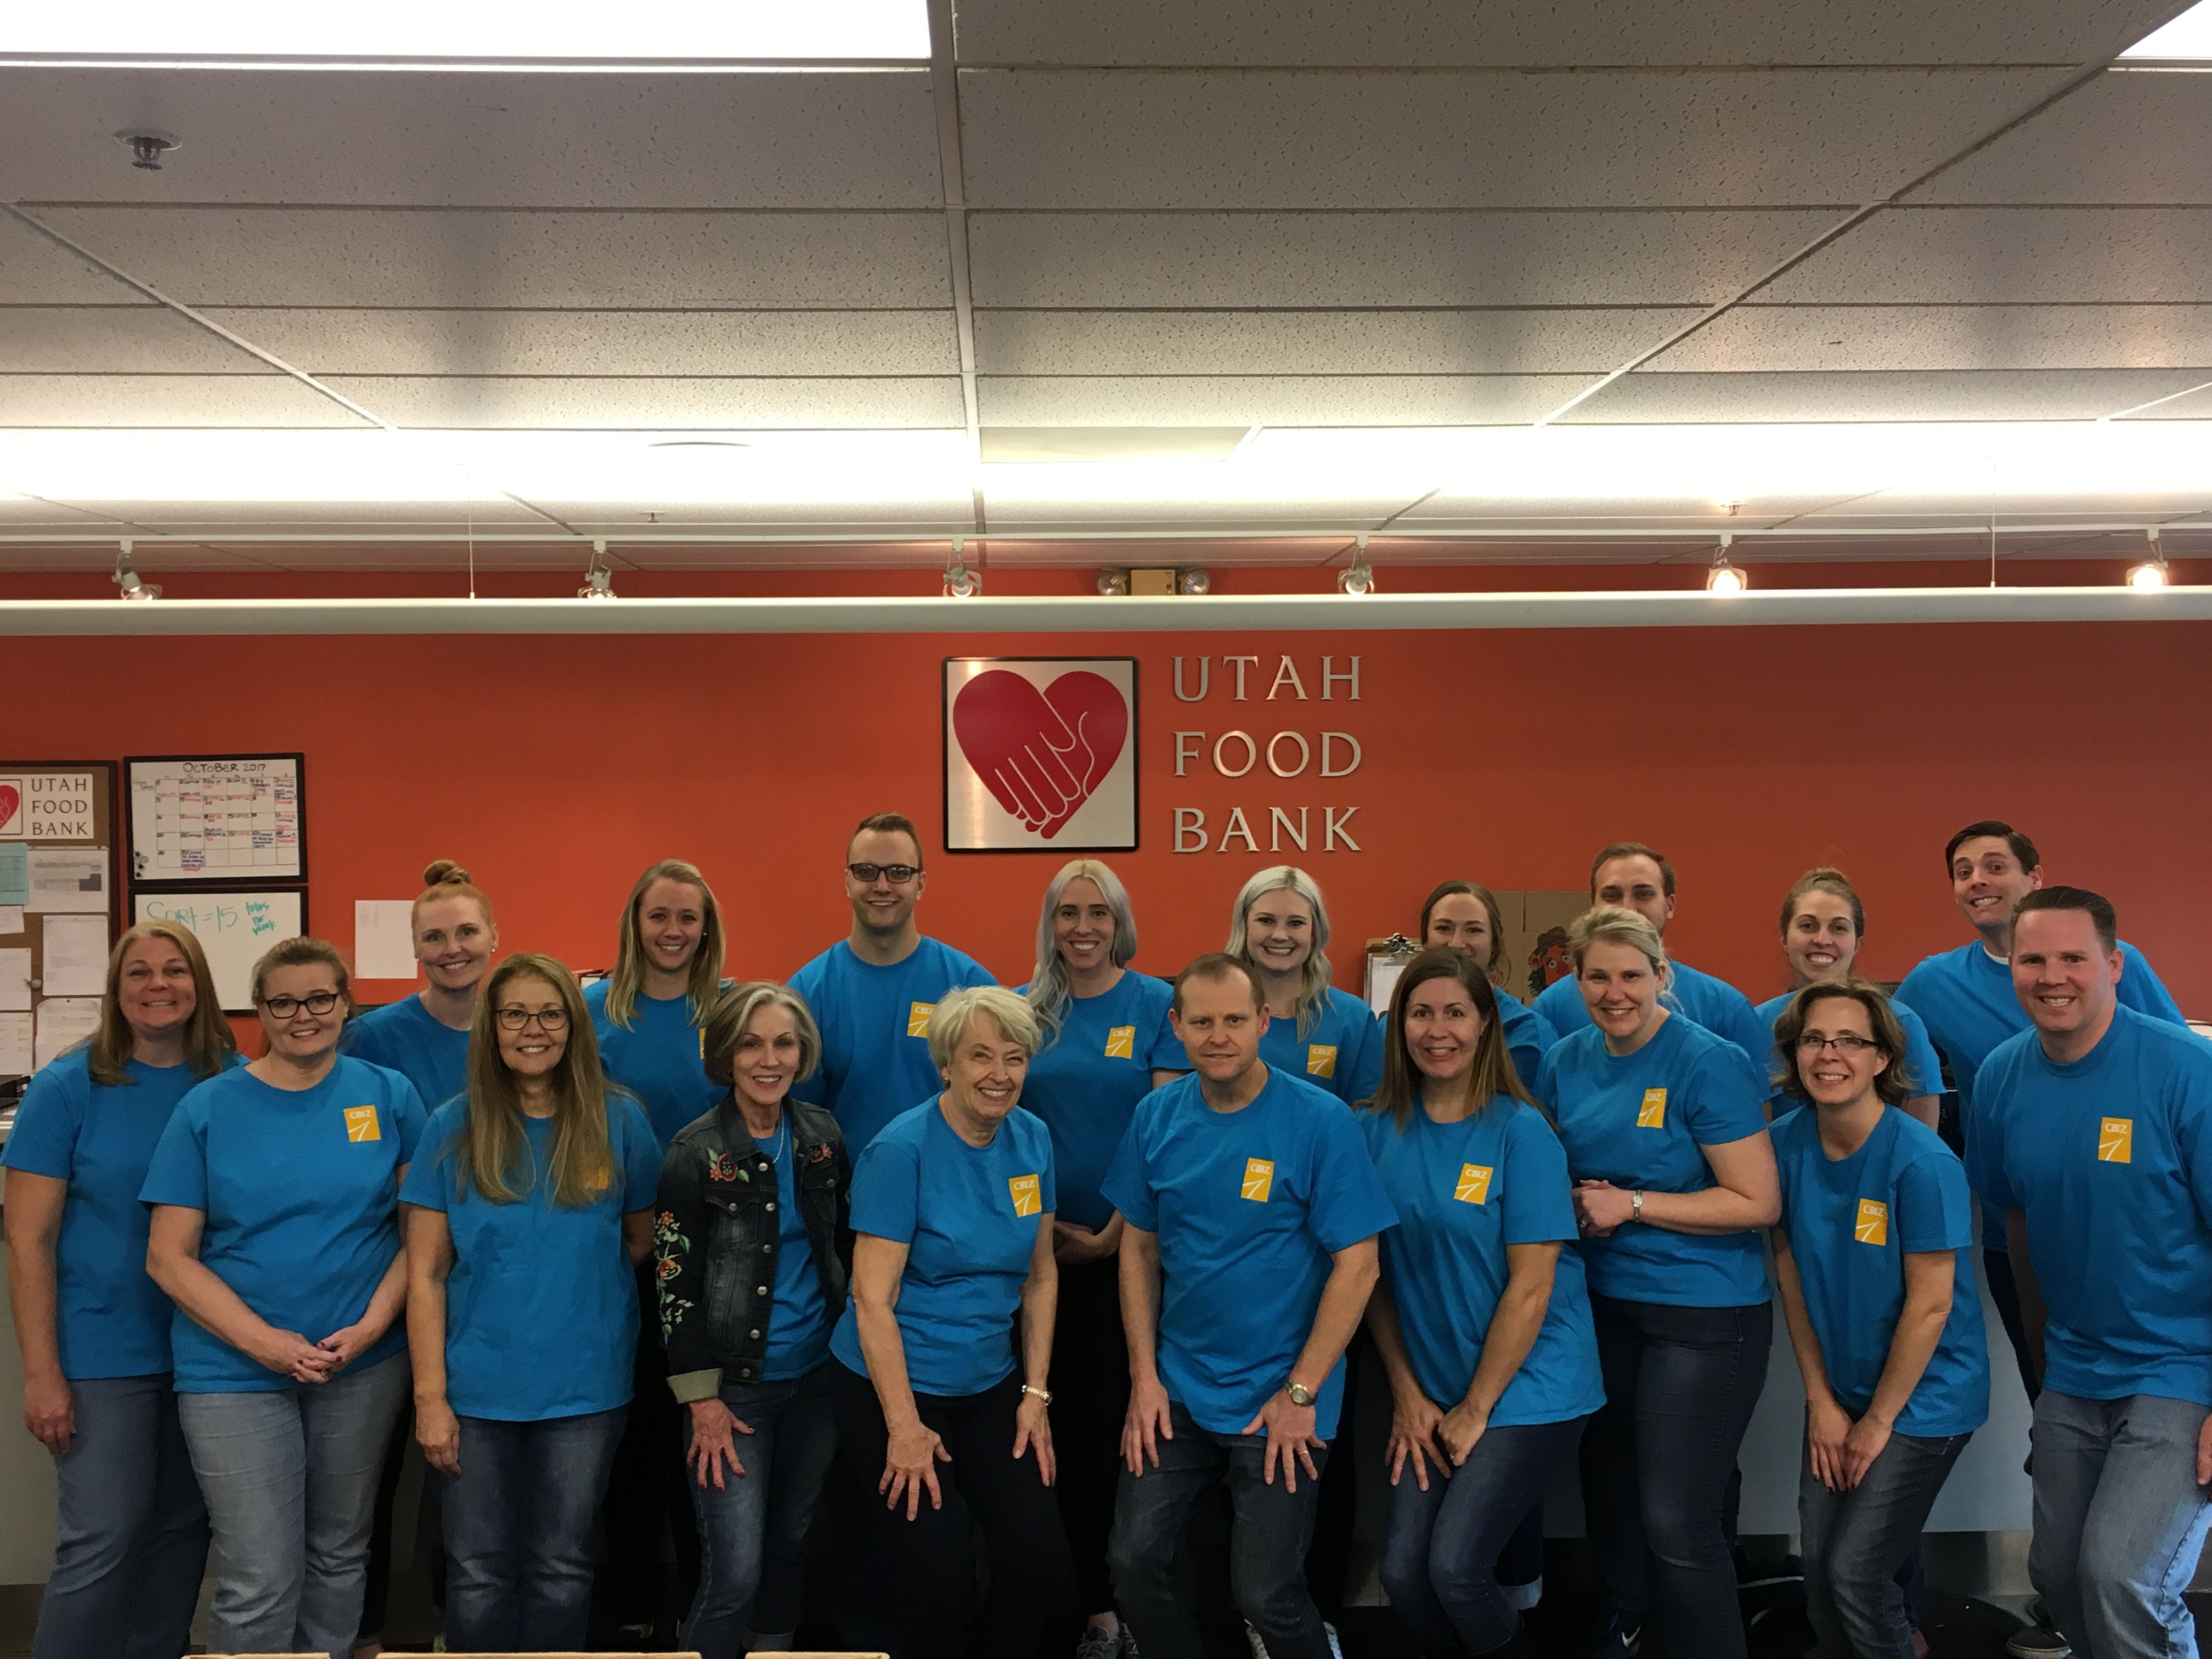 Volunteers from salt lake city helped fight hunger